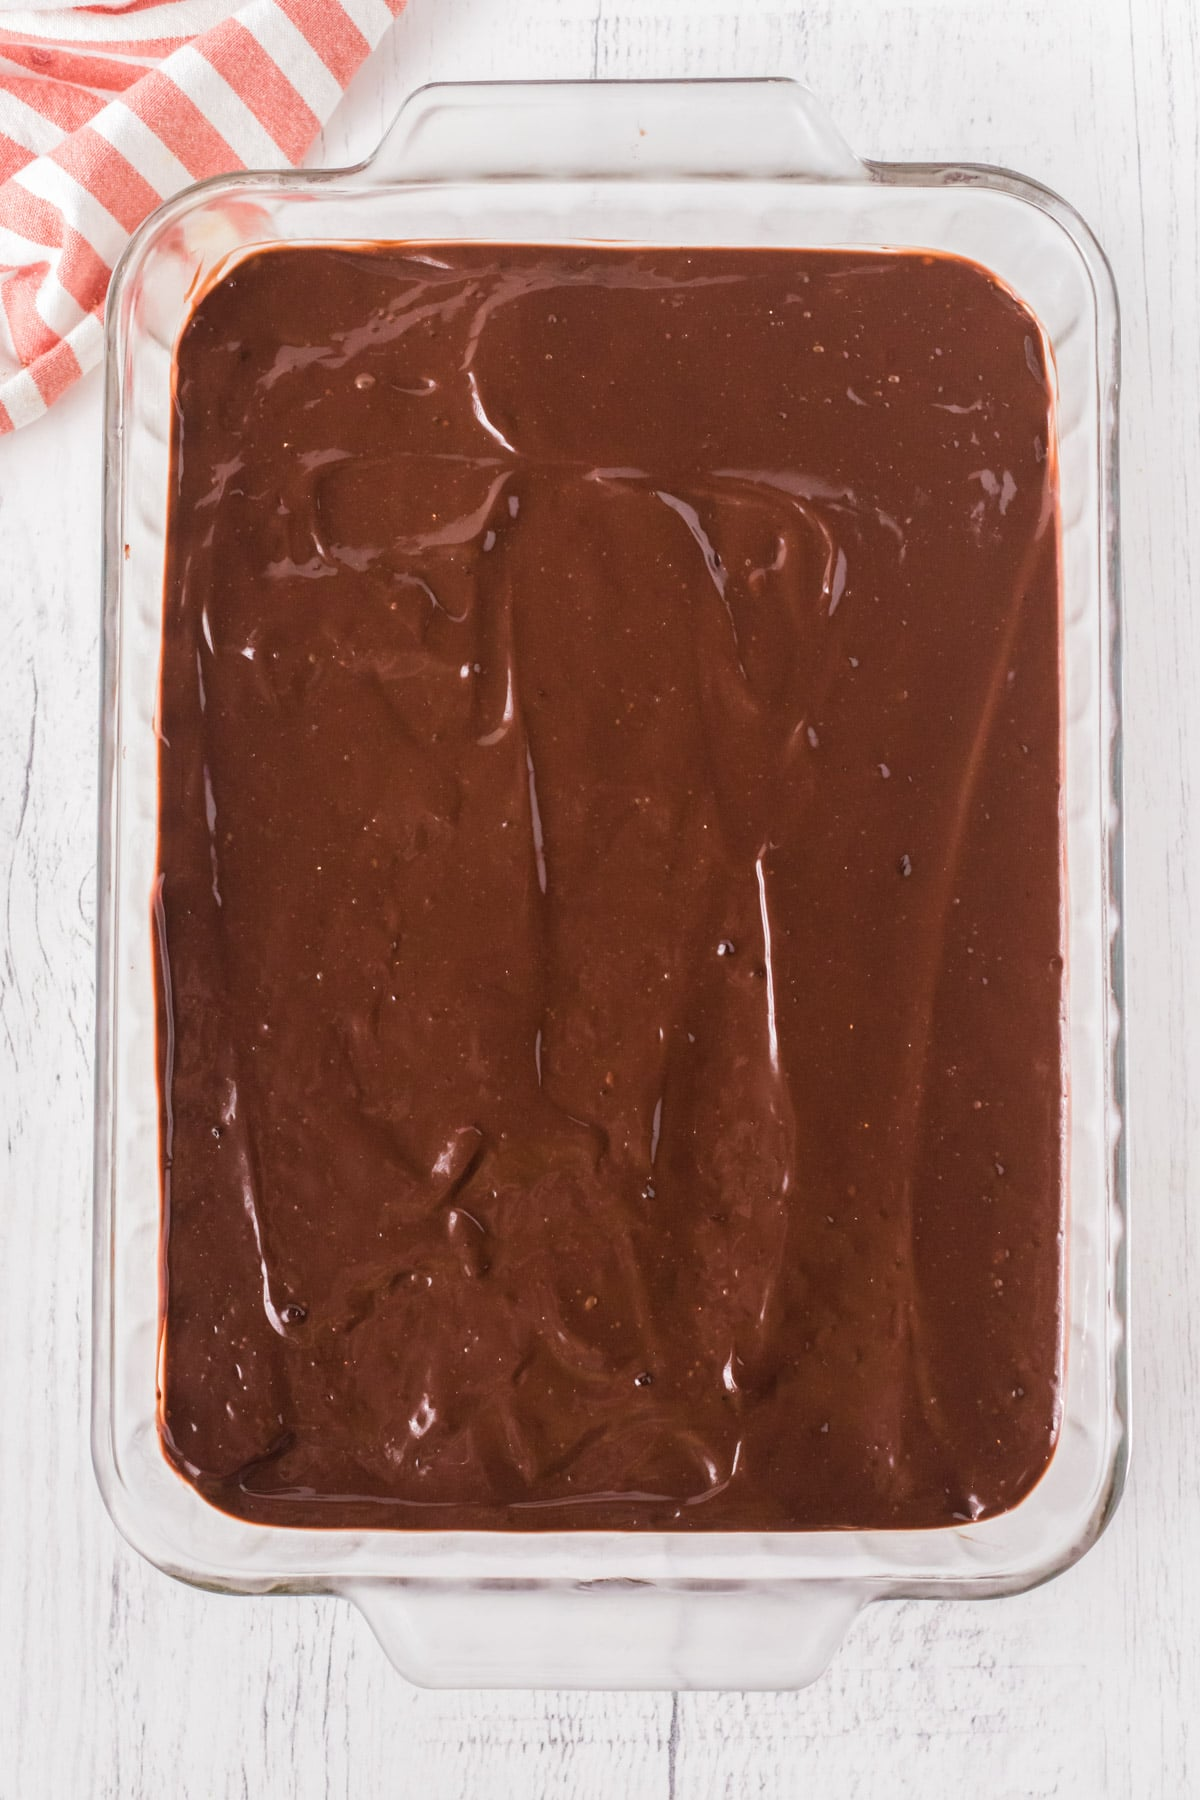 Chocolate pudding layer in striped delight